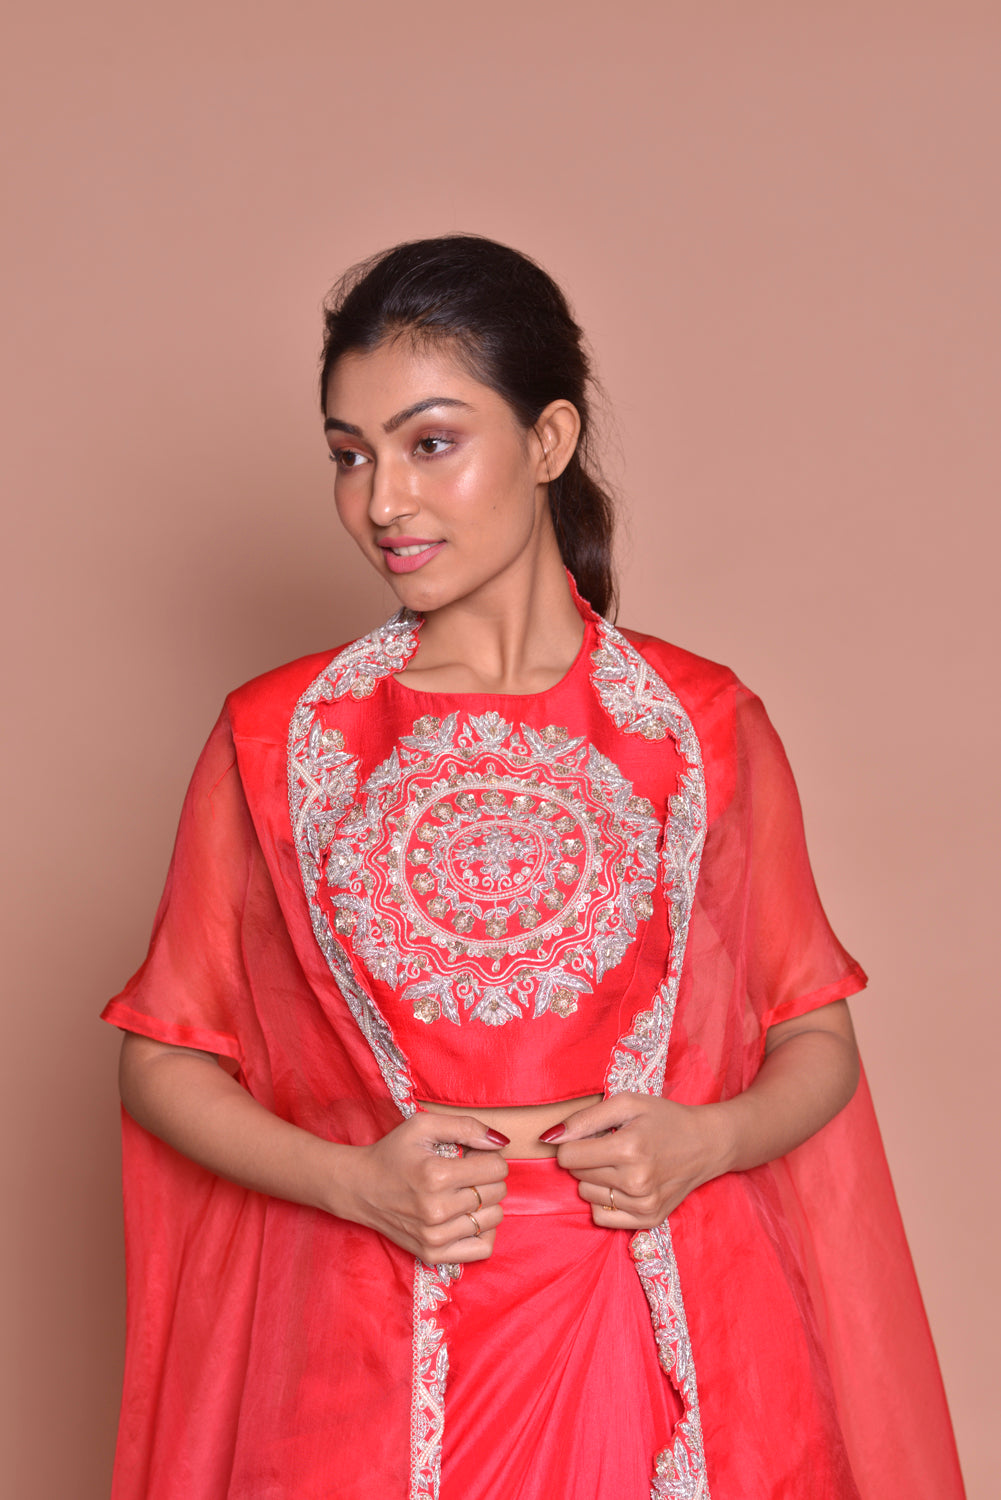 Buy red embroidered crop top online in USA with draped skirt and cape. Get ready for festive occasions with exquisite designer dresses, salwar suits, sharara suits  from Pure Elegance Indian clothing store in USA.-closeup